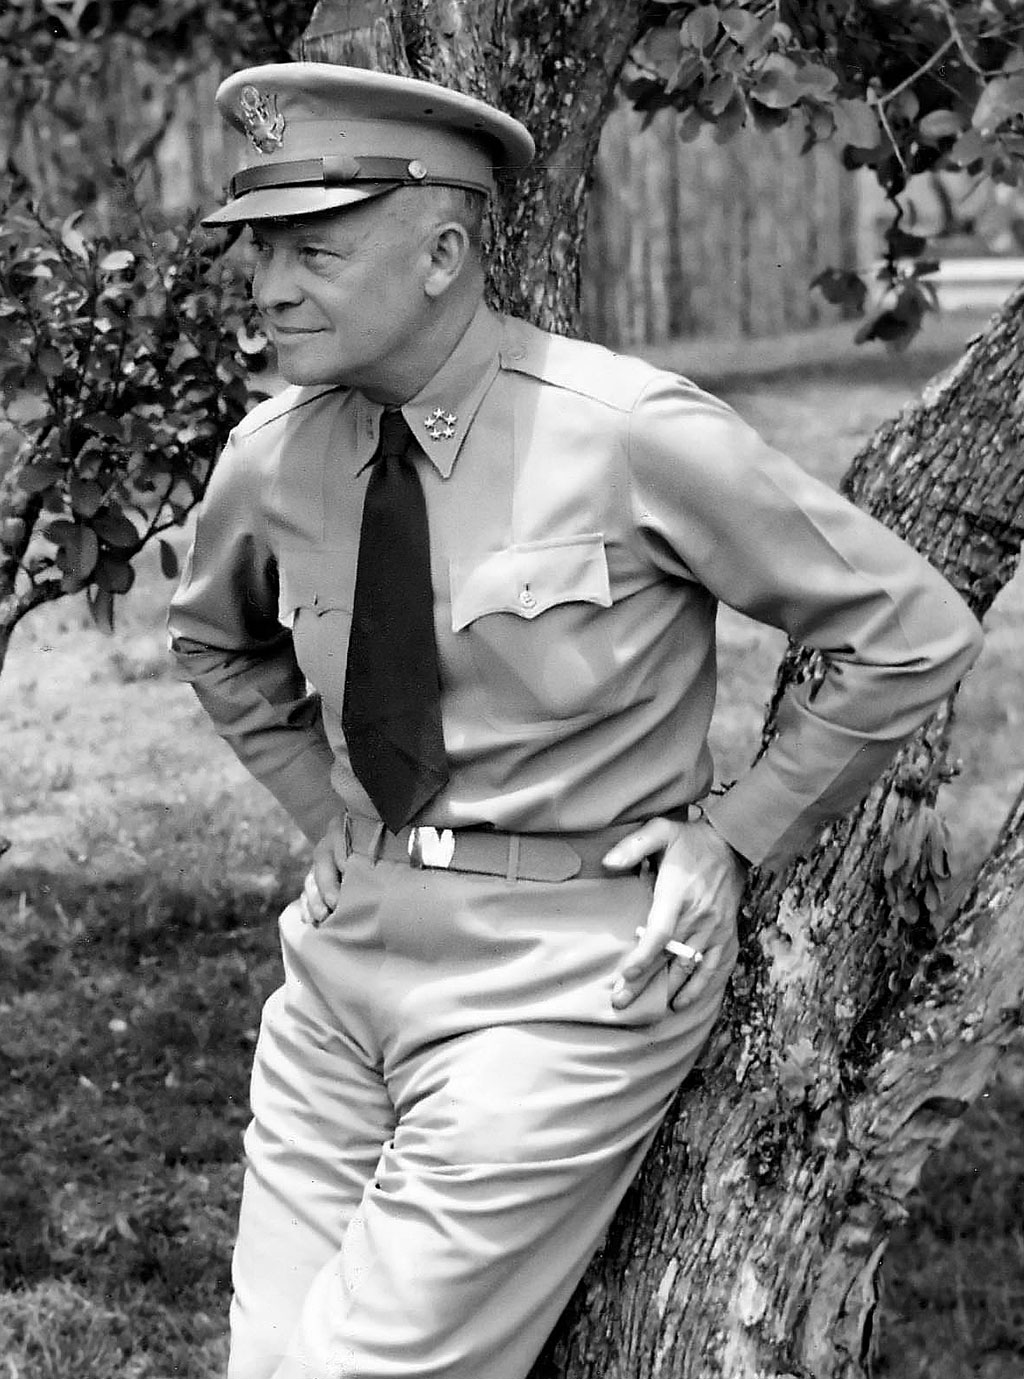 Filedwight D Eisenhower As General Of The Army Cropjpg